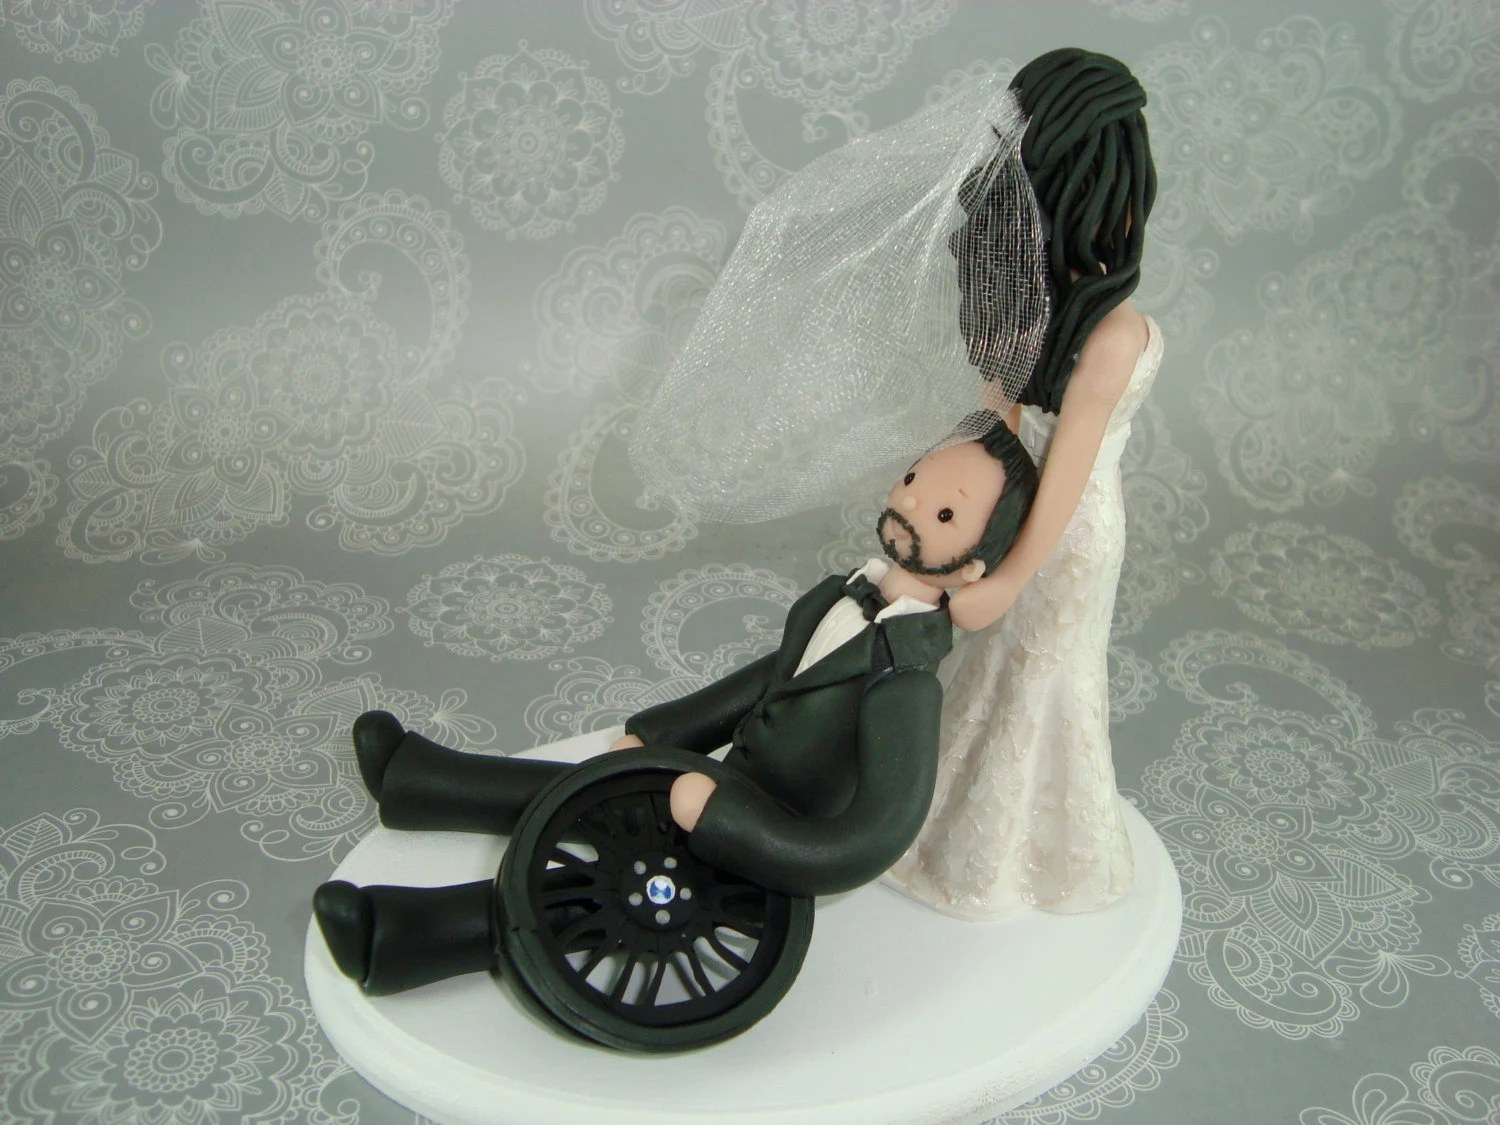 Bride Dragging Groom Customized Wedding Cake Topper